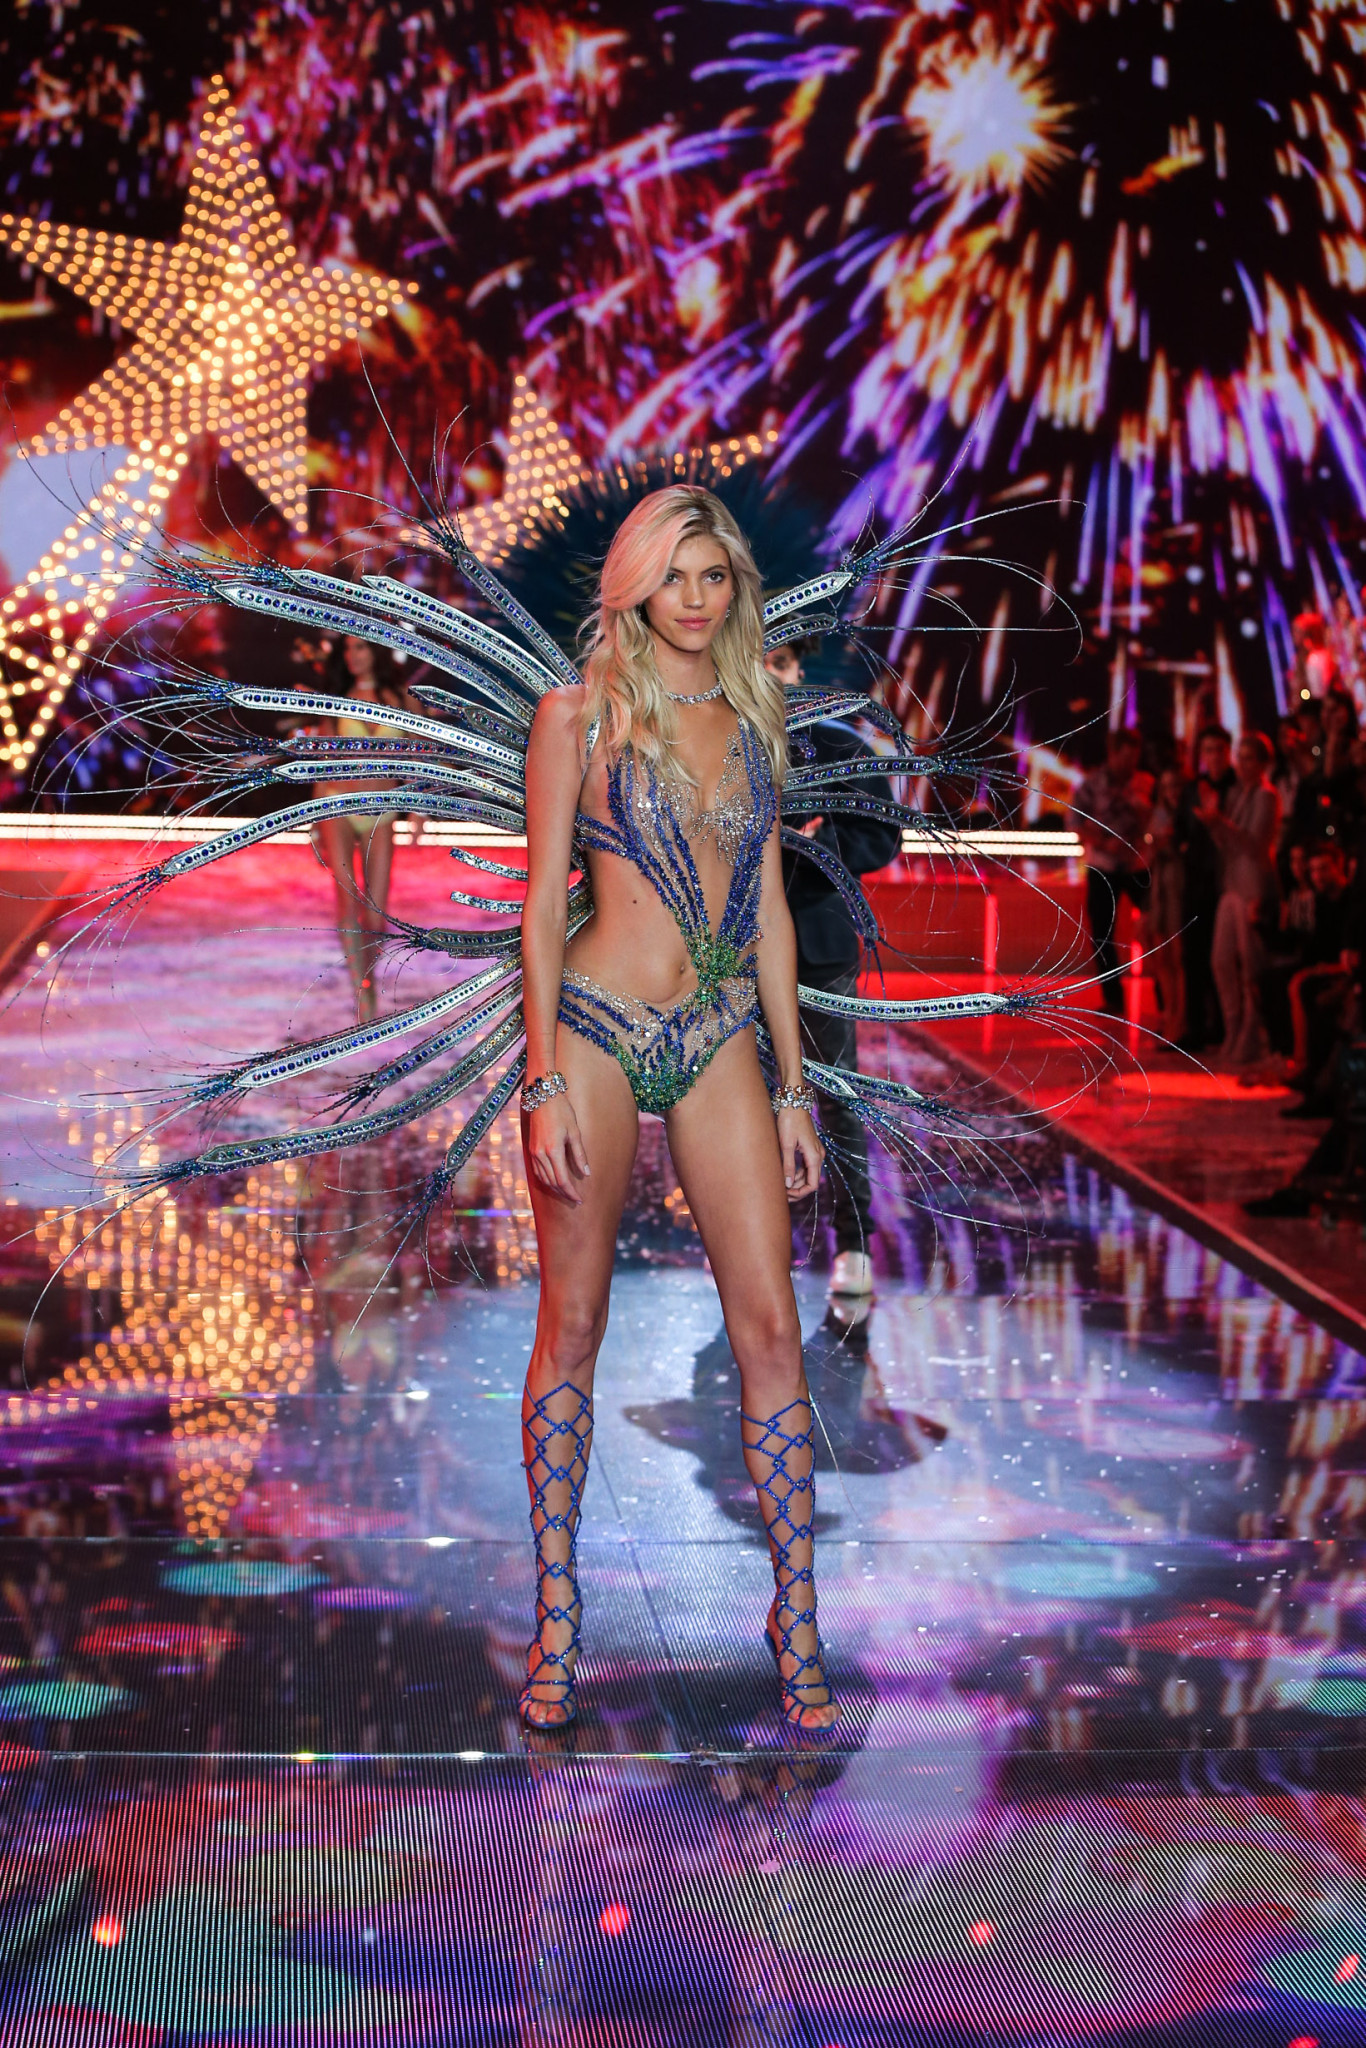 Devon walks the runway at the 2015 Victoria's Secret Fashion Show in New York City on November 10th, 2015